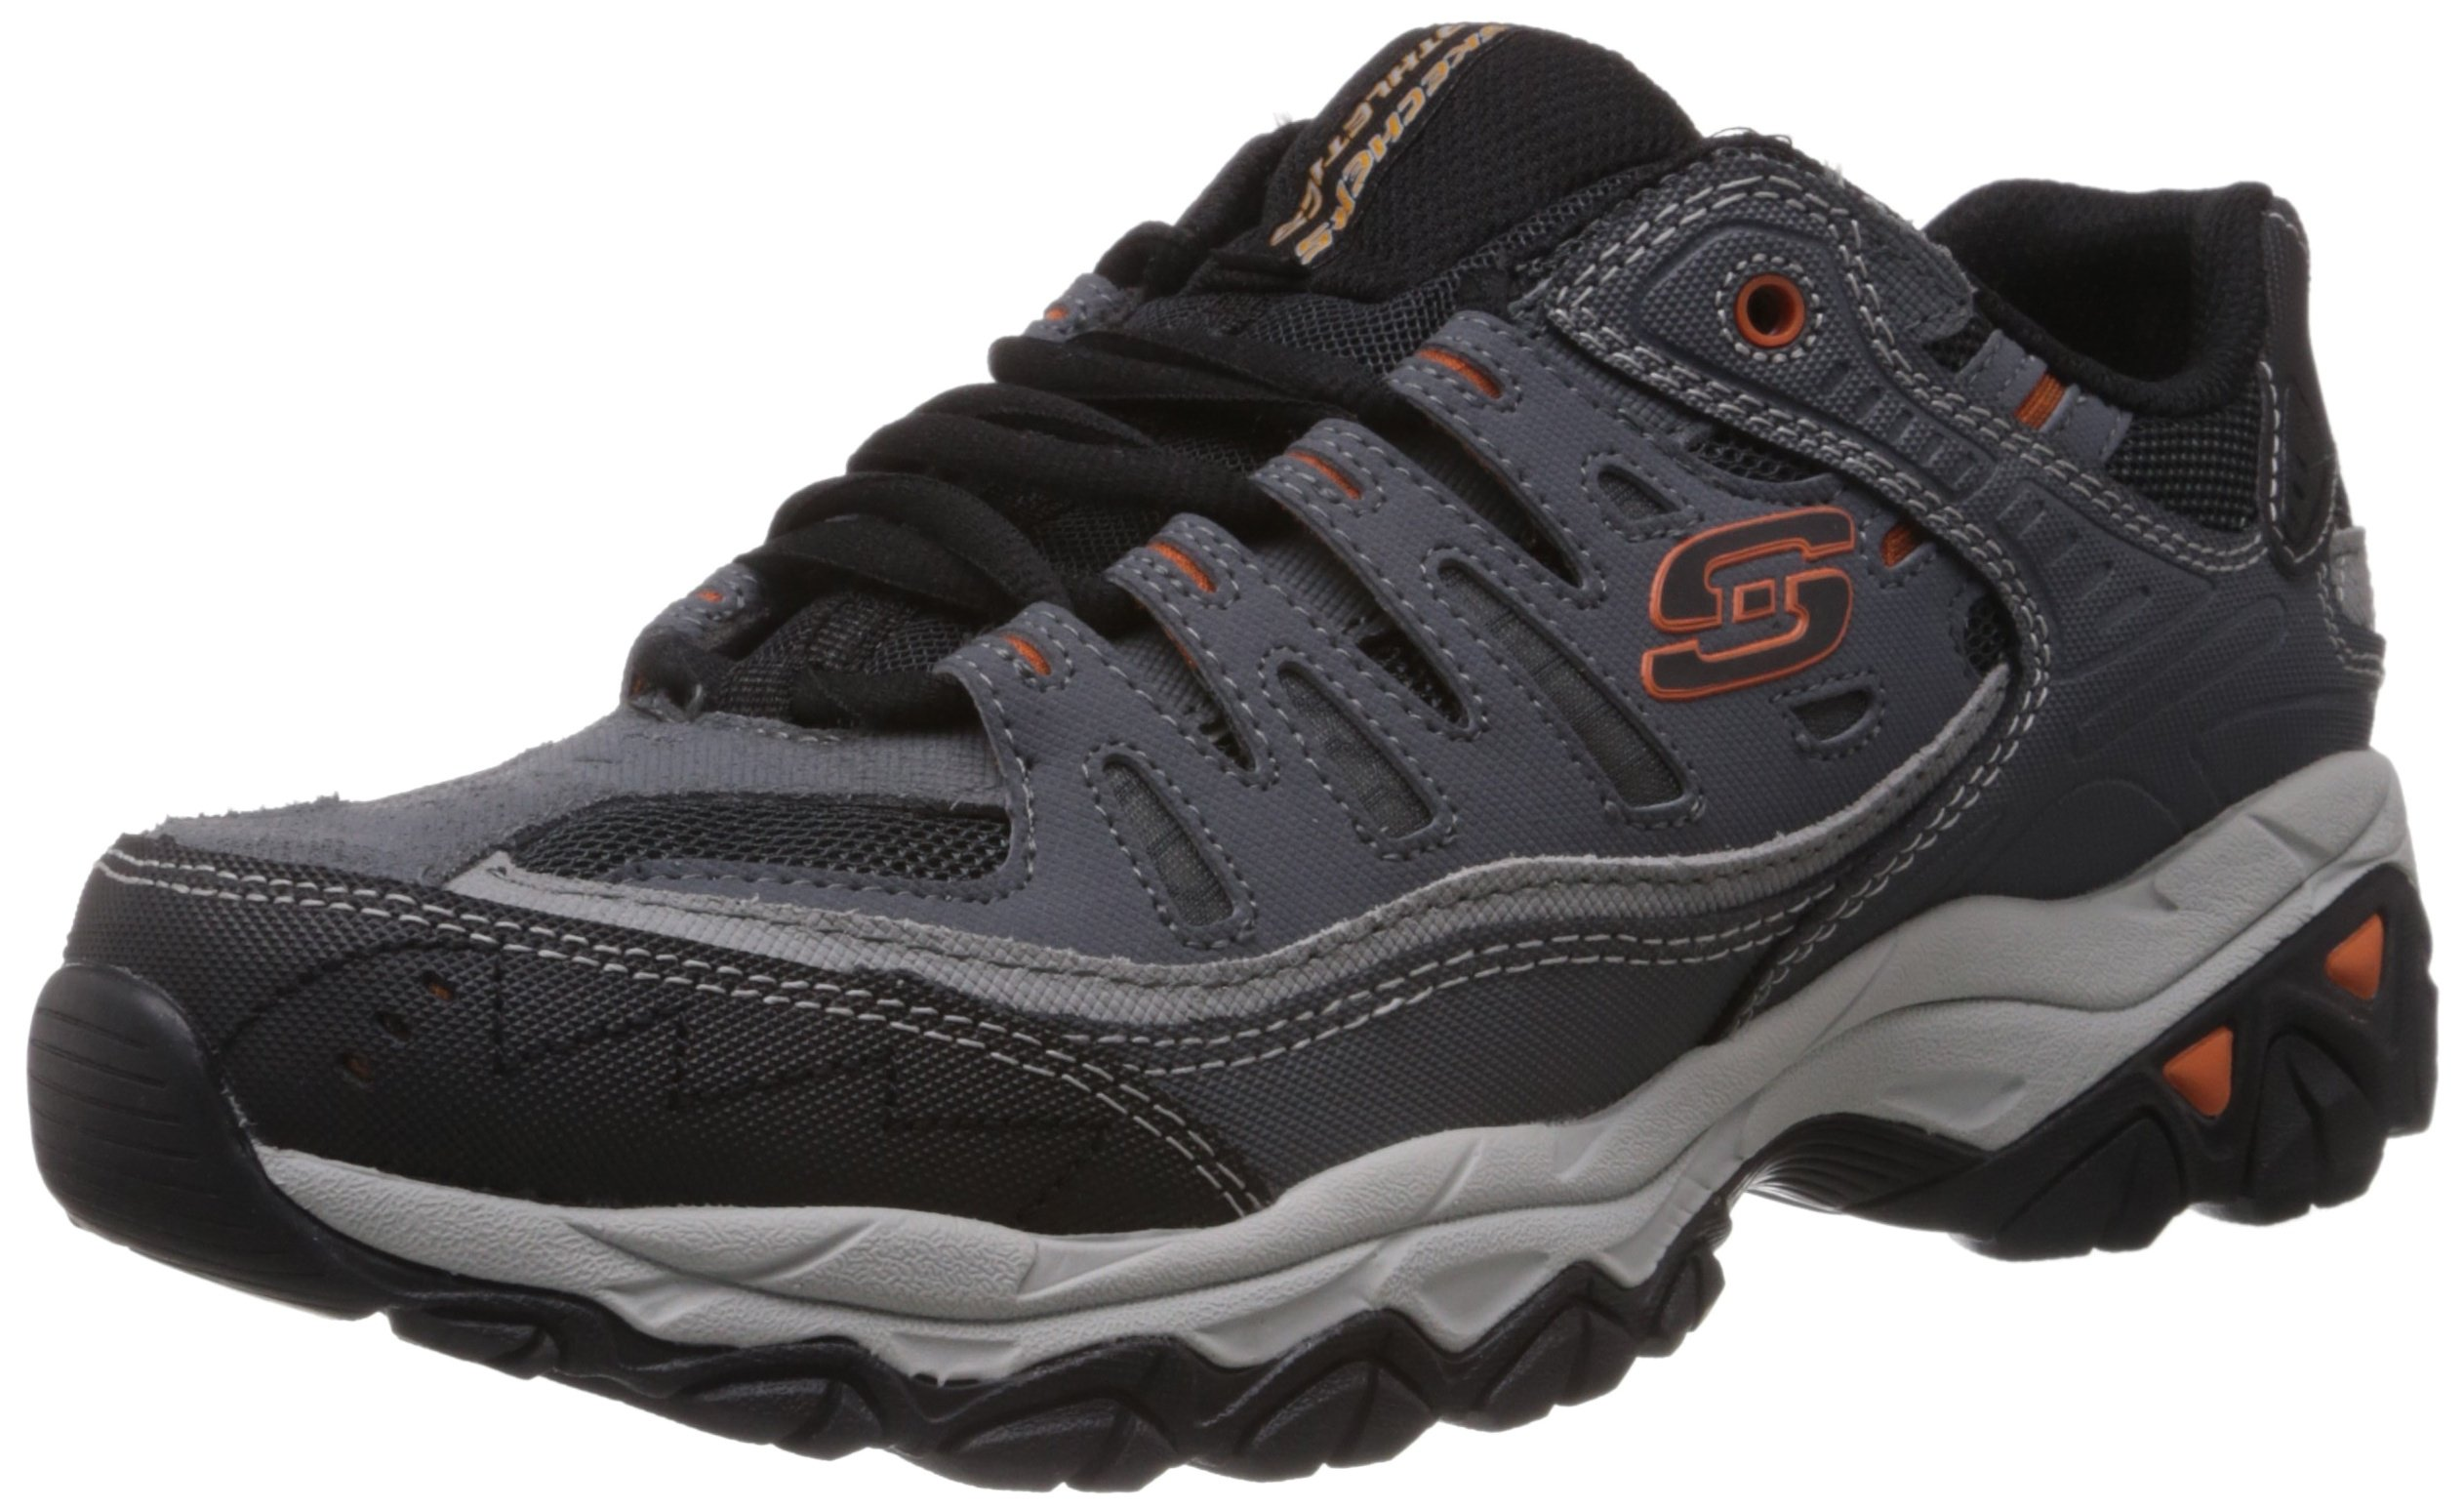 e7081d2bd72 Galleon - Skechers Men s AFTER BURN M.FIT Memory Foam Lace-Up ...